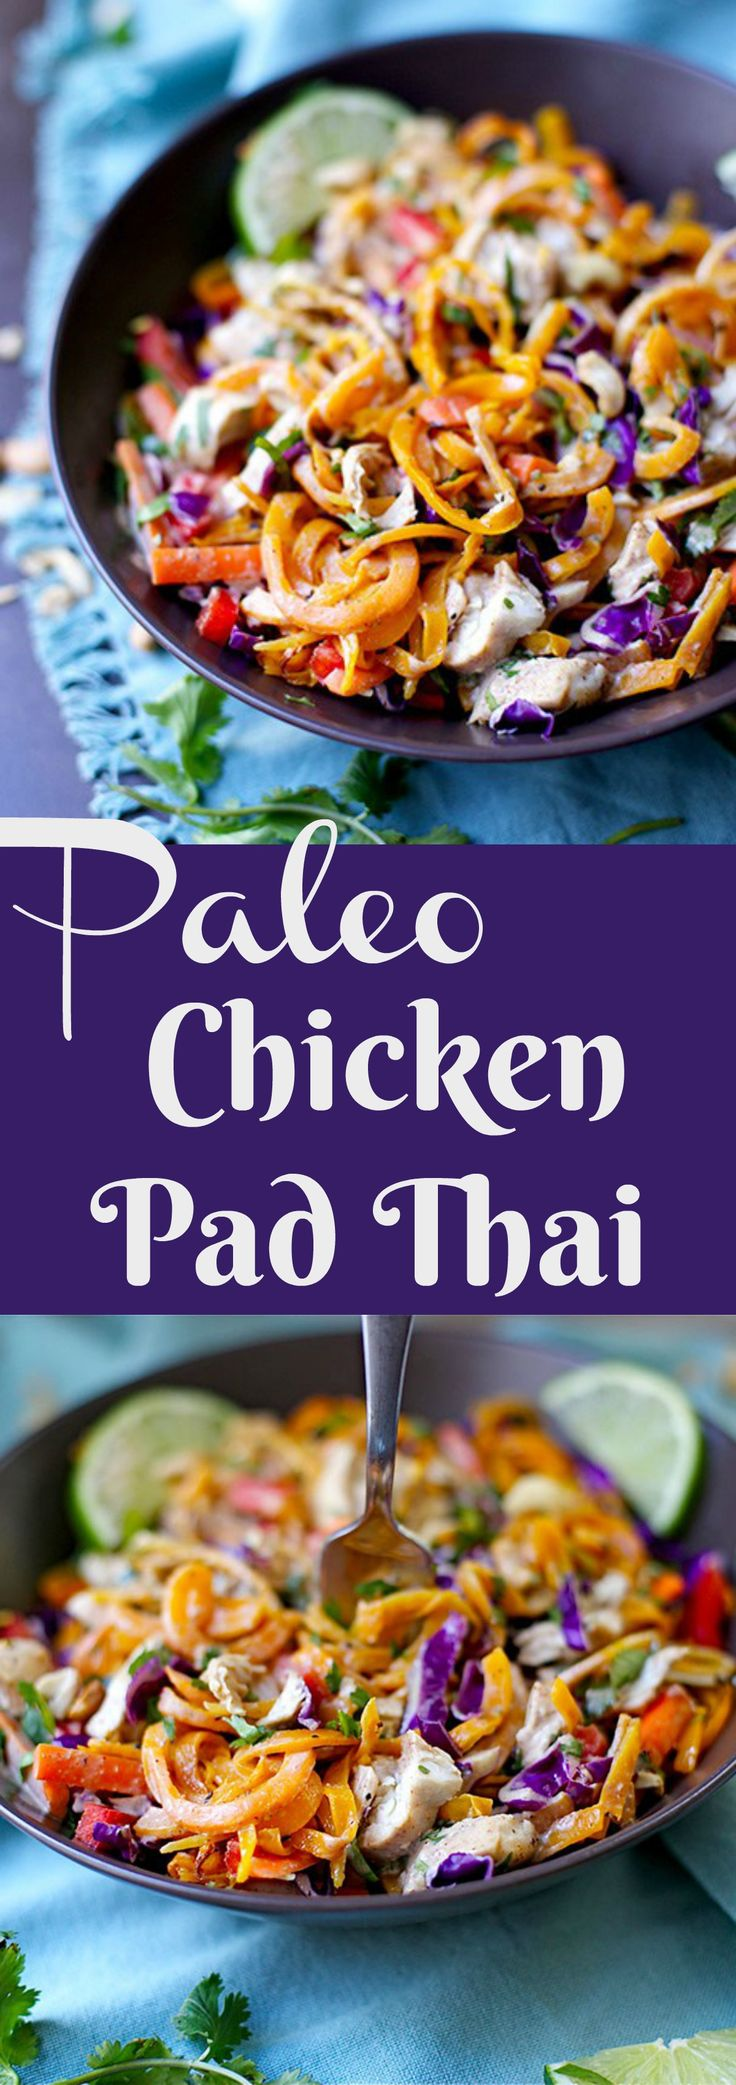 Simple Grain-Free Pad Thai that is packed with flavor!! Easy for a weeknight meal!